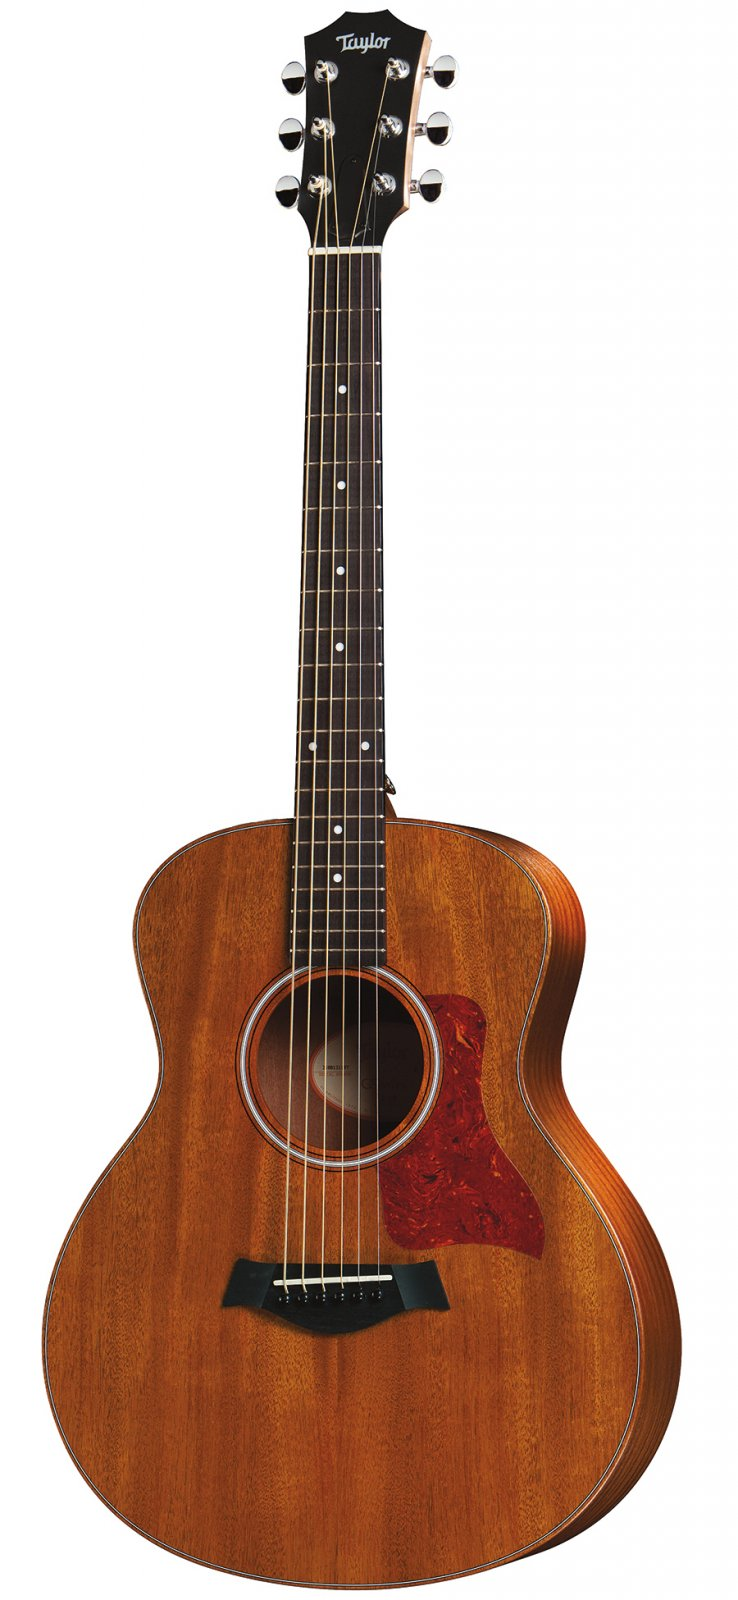 Taylor GS Mini Mahogany Top Acoustic Guitar with Deluxe Hard Gigbag